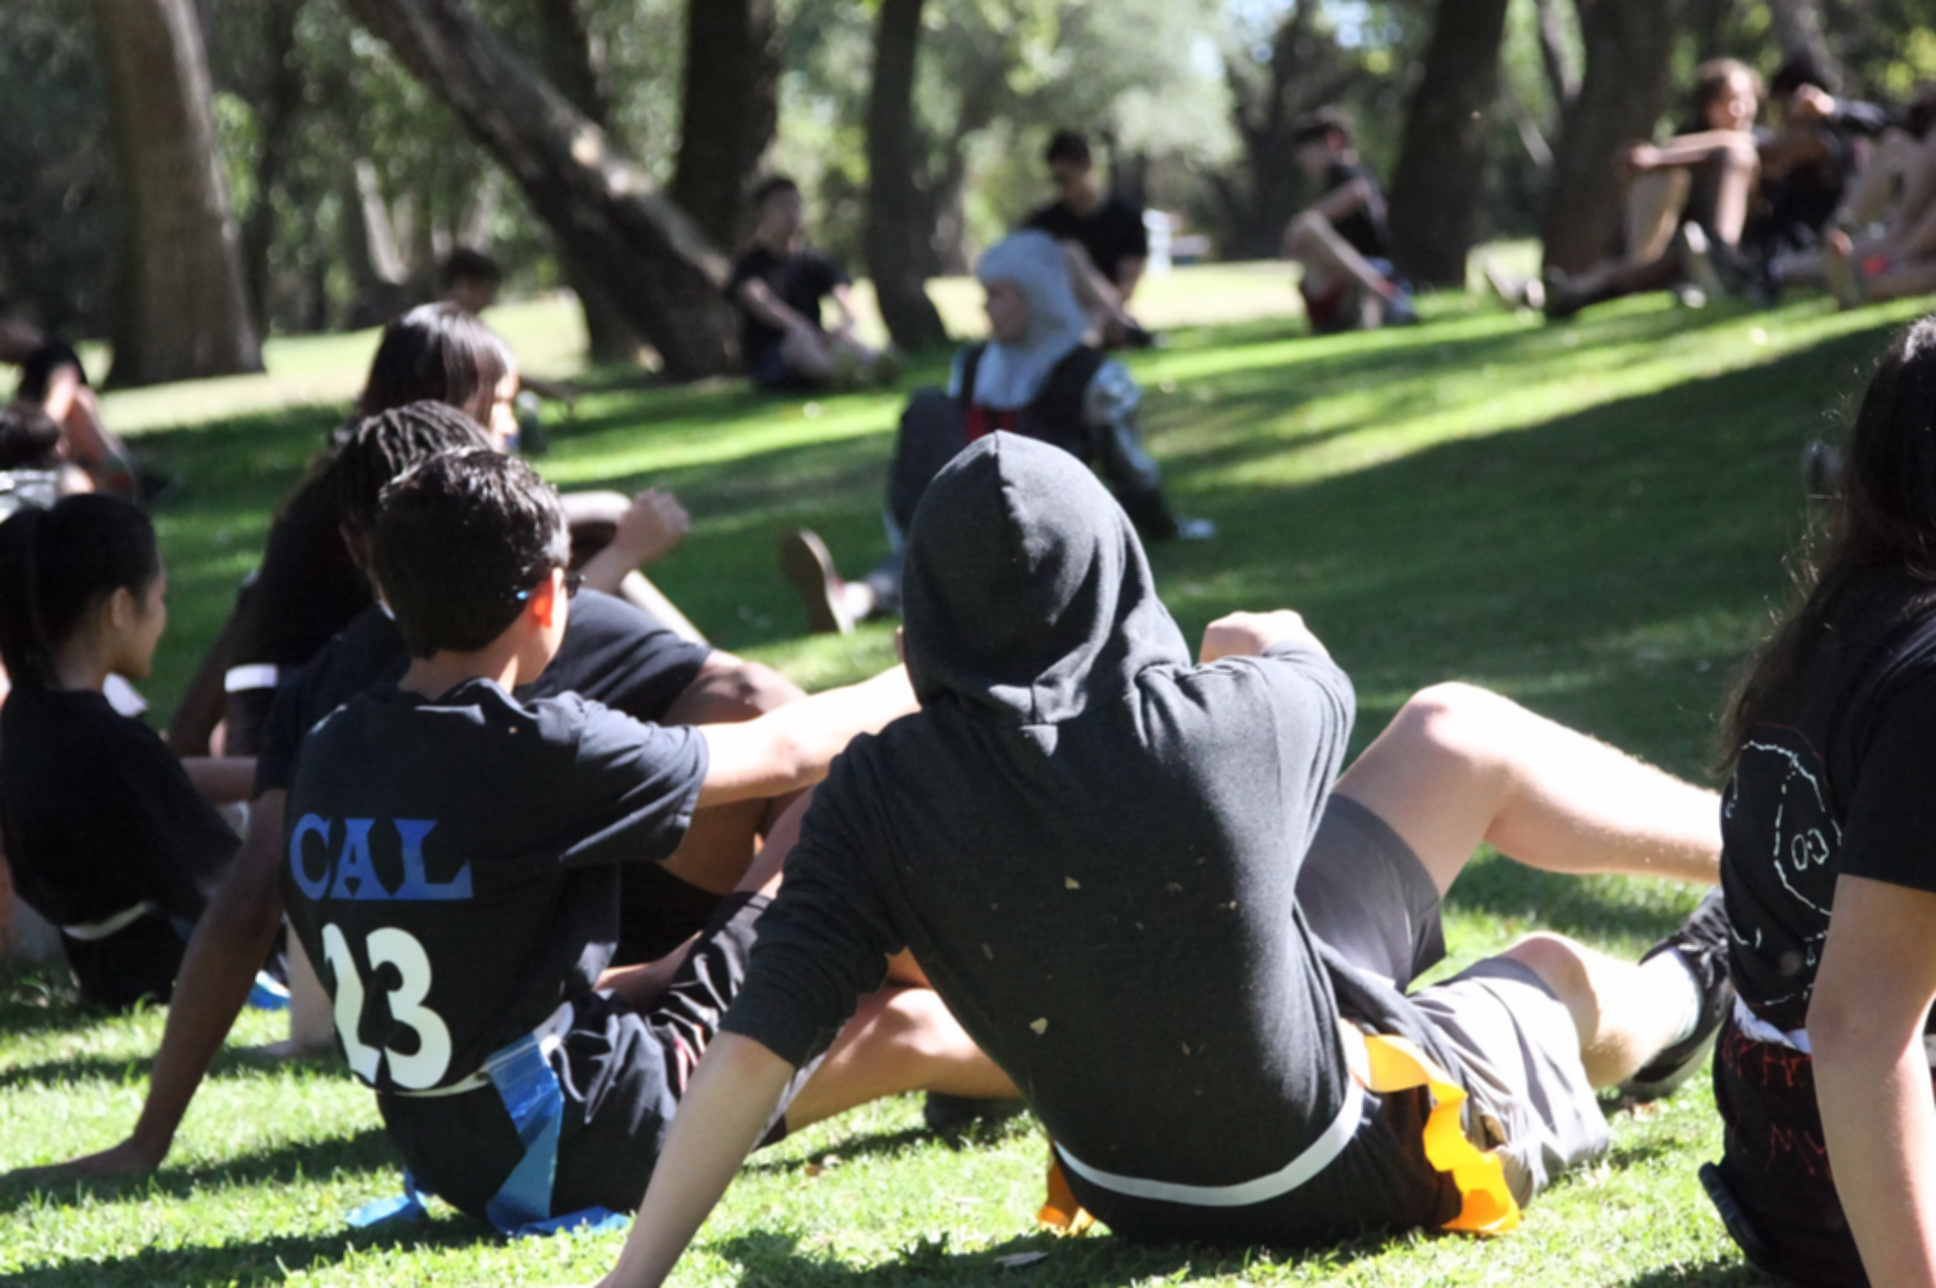 The Black Team stretches before the game. (Photo by Shimin Zhang)